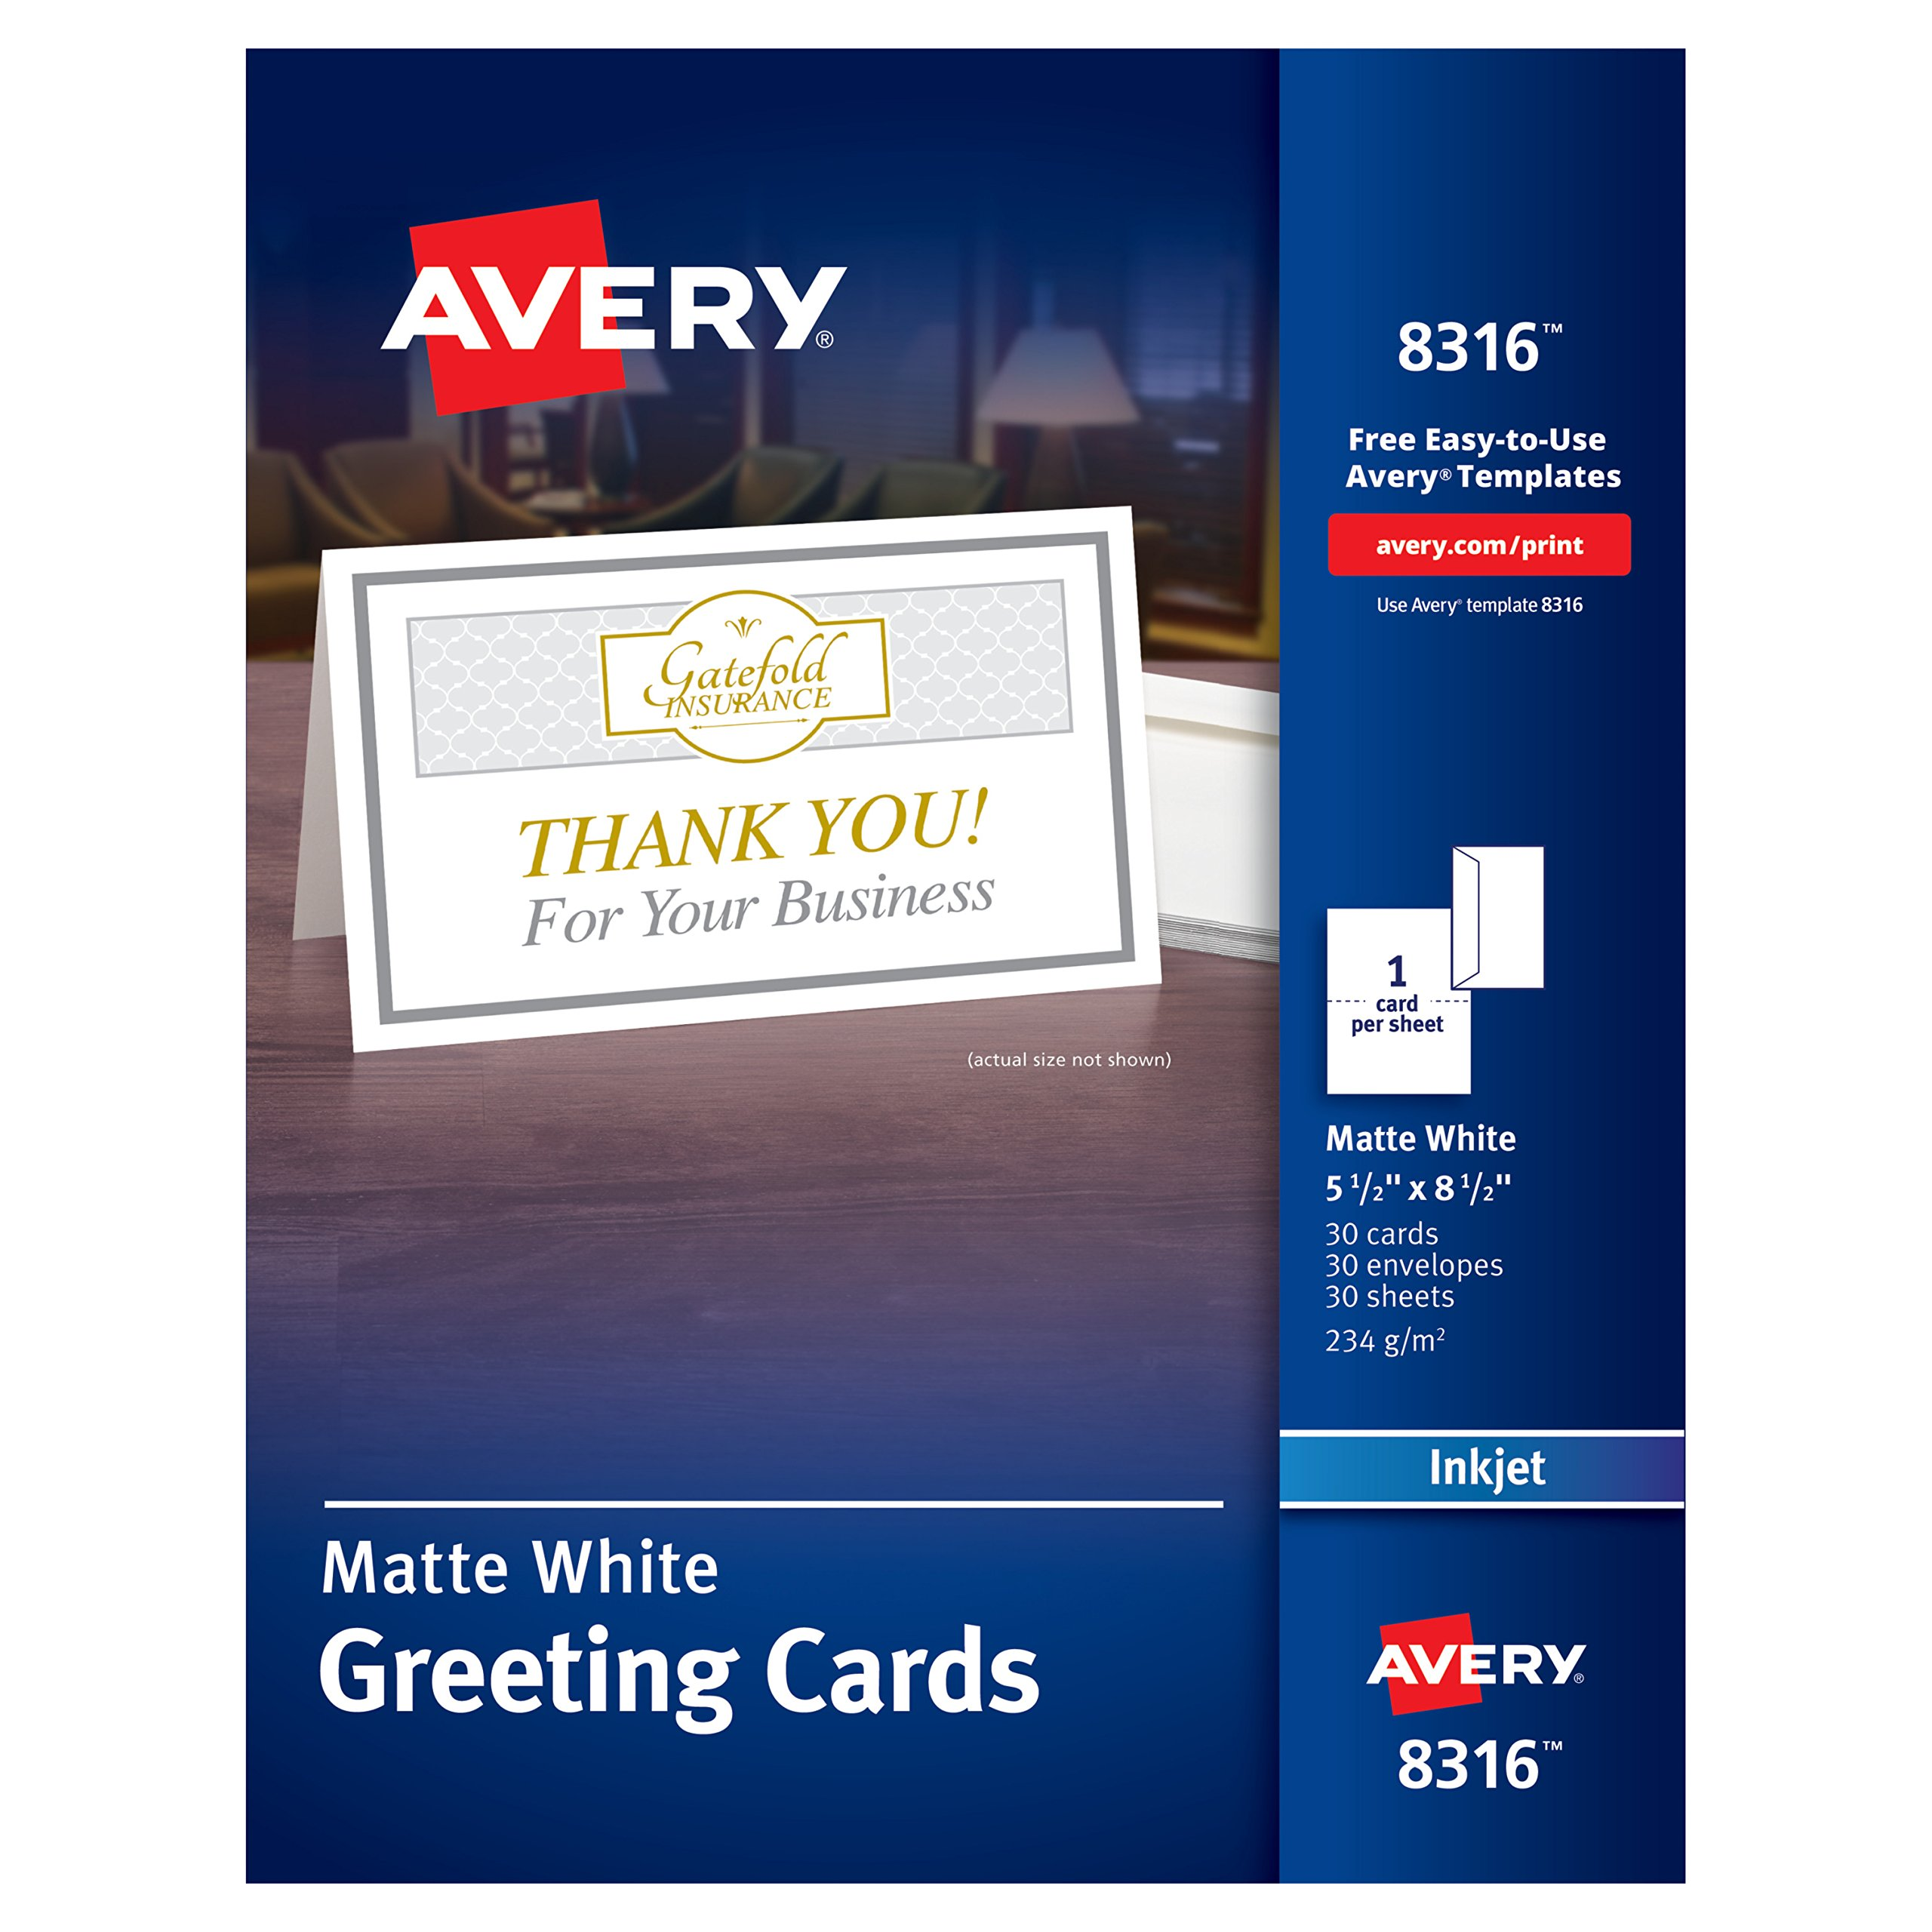 Avery Half-Fold Greeting Cards, Inkjet, 5.5 x 8.5, Matte White, Box of 30, Envelopes Included (8316) by Avery